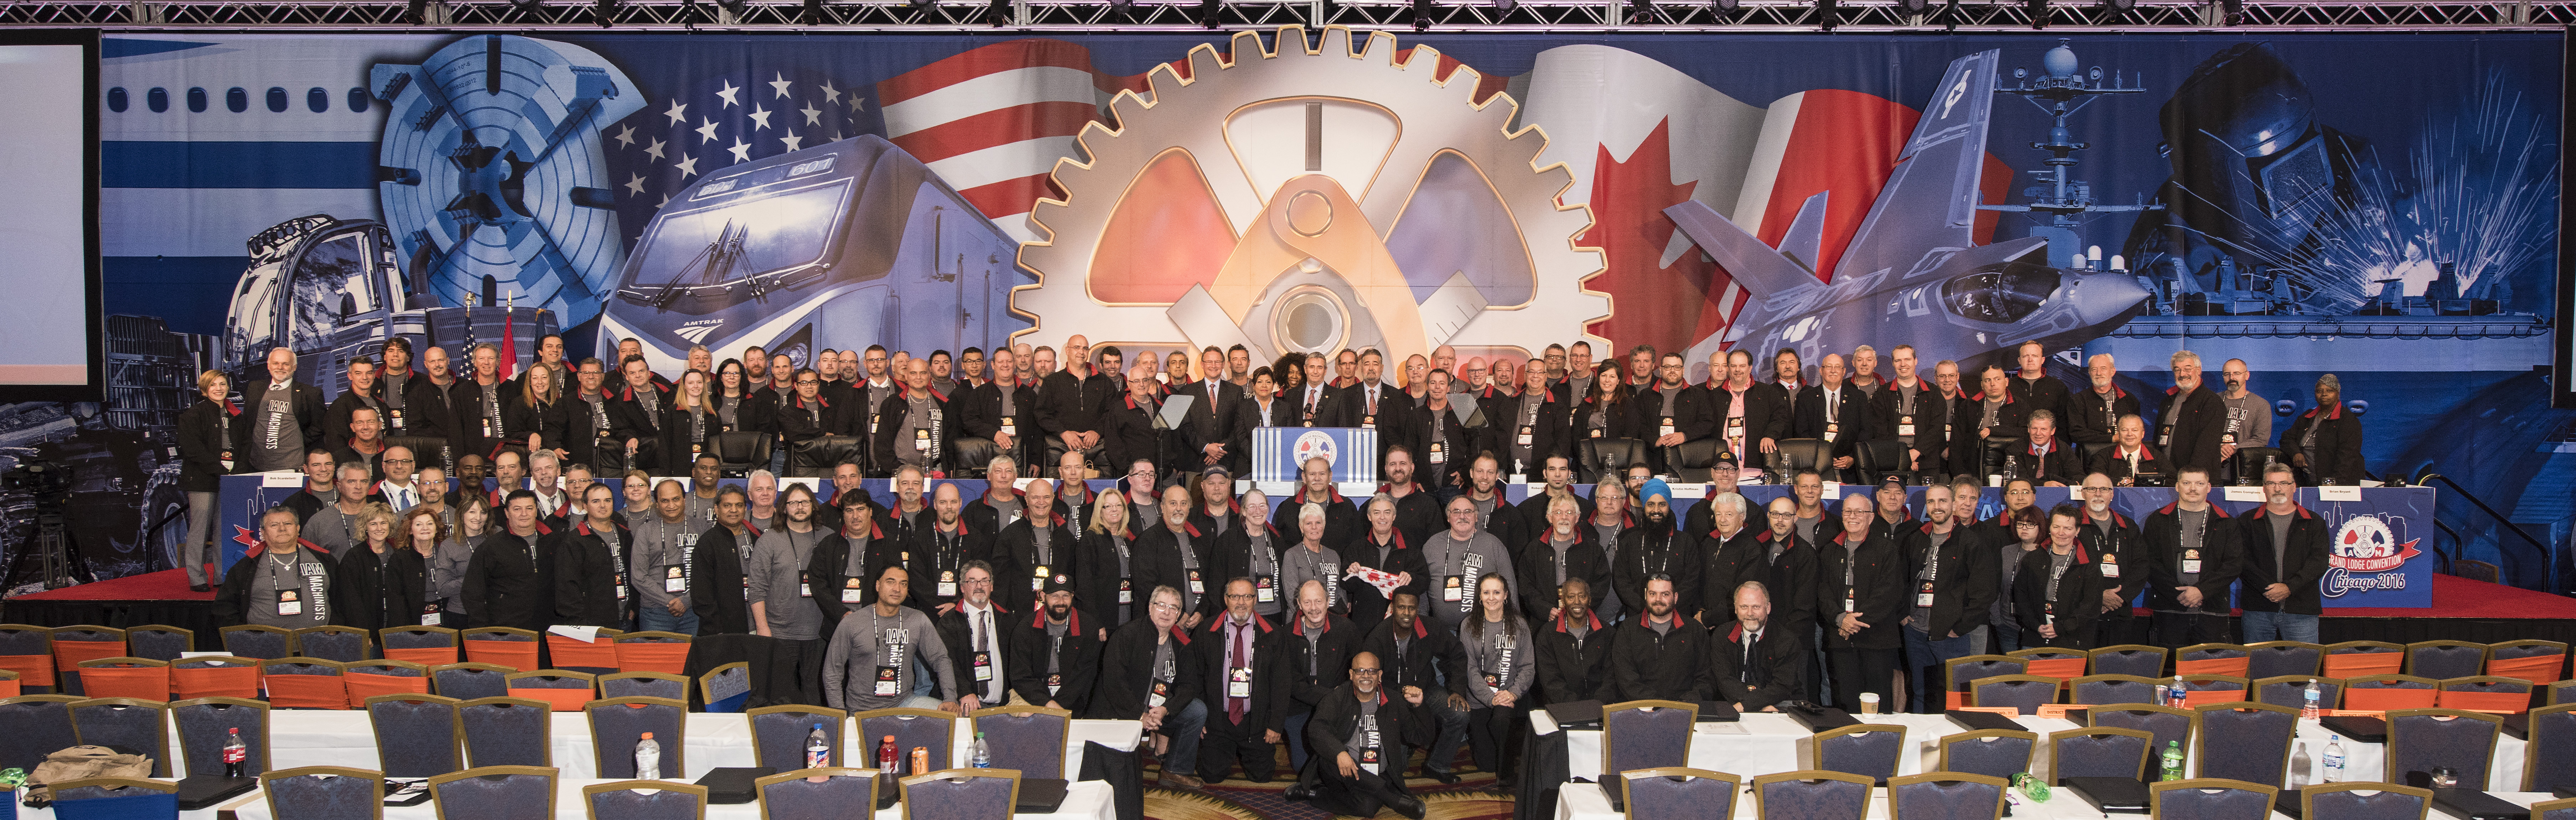 canadian-staff-and-delegates